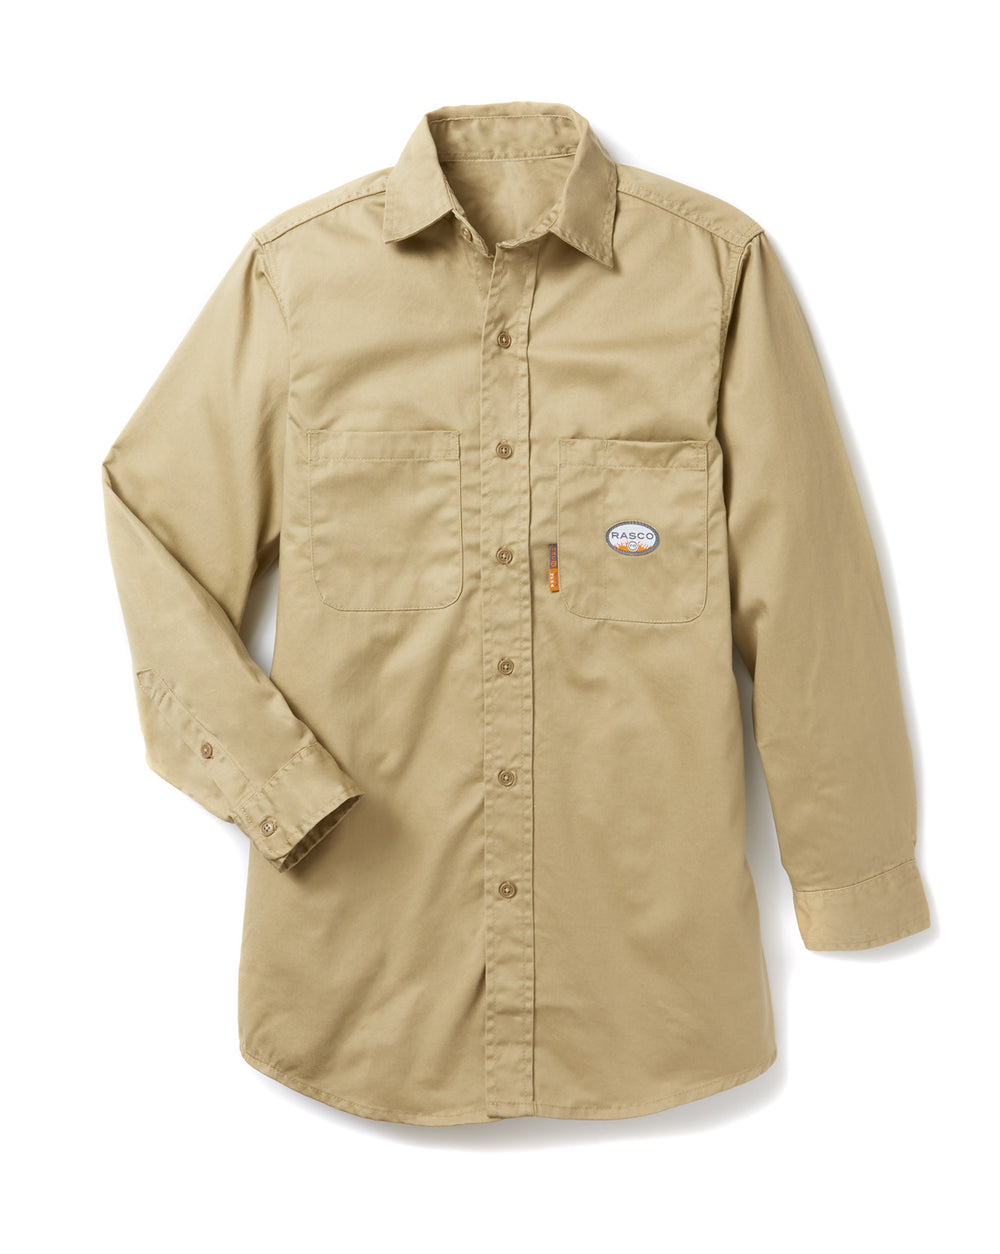 Khaki Long Sleeve FR Uniform Shirt